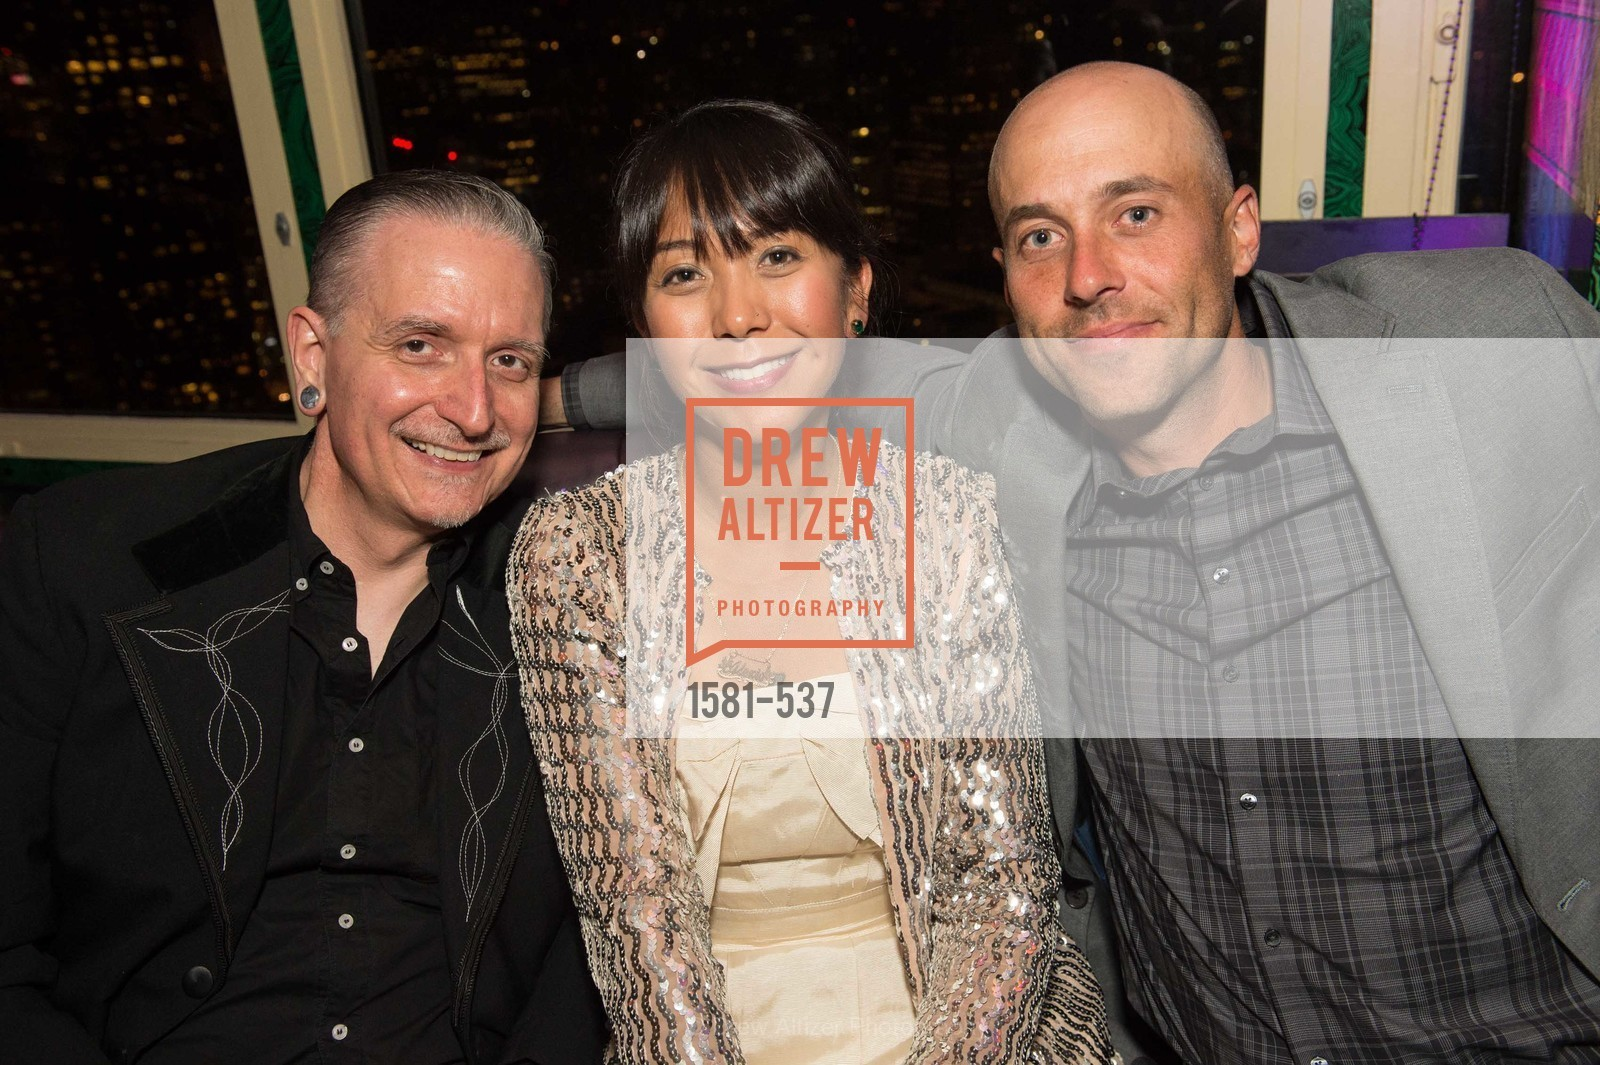 George Ripley, Alexis Ripley, Max Davis, TOP OF THE MARK'S 75TH Anniversary Party, US, November 6th, 2014,Drew Altizer, Drew Altizer Photography, full-service agency, private events, San Francisco photographer, photographer california